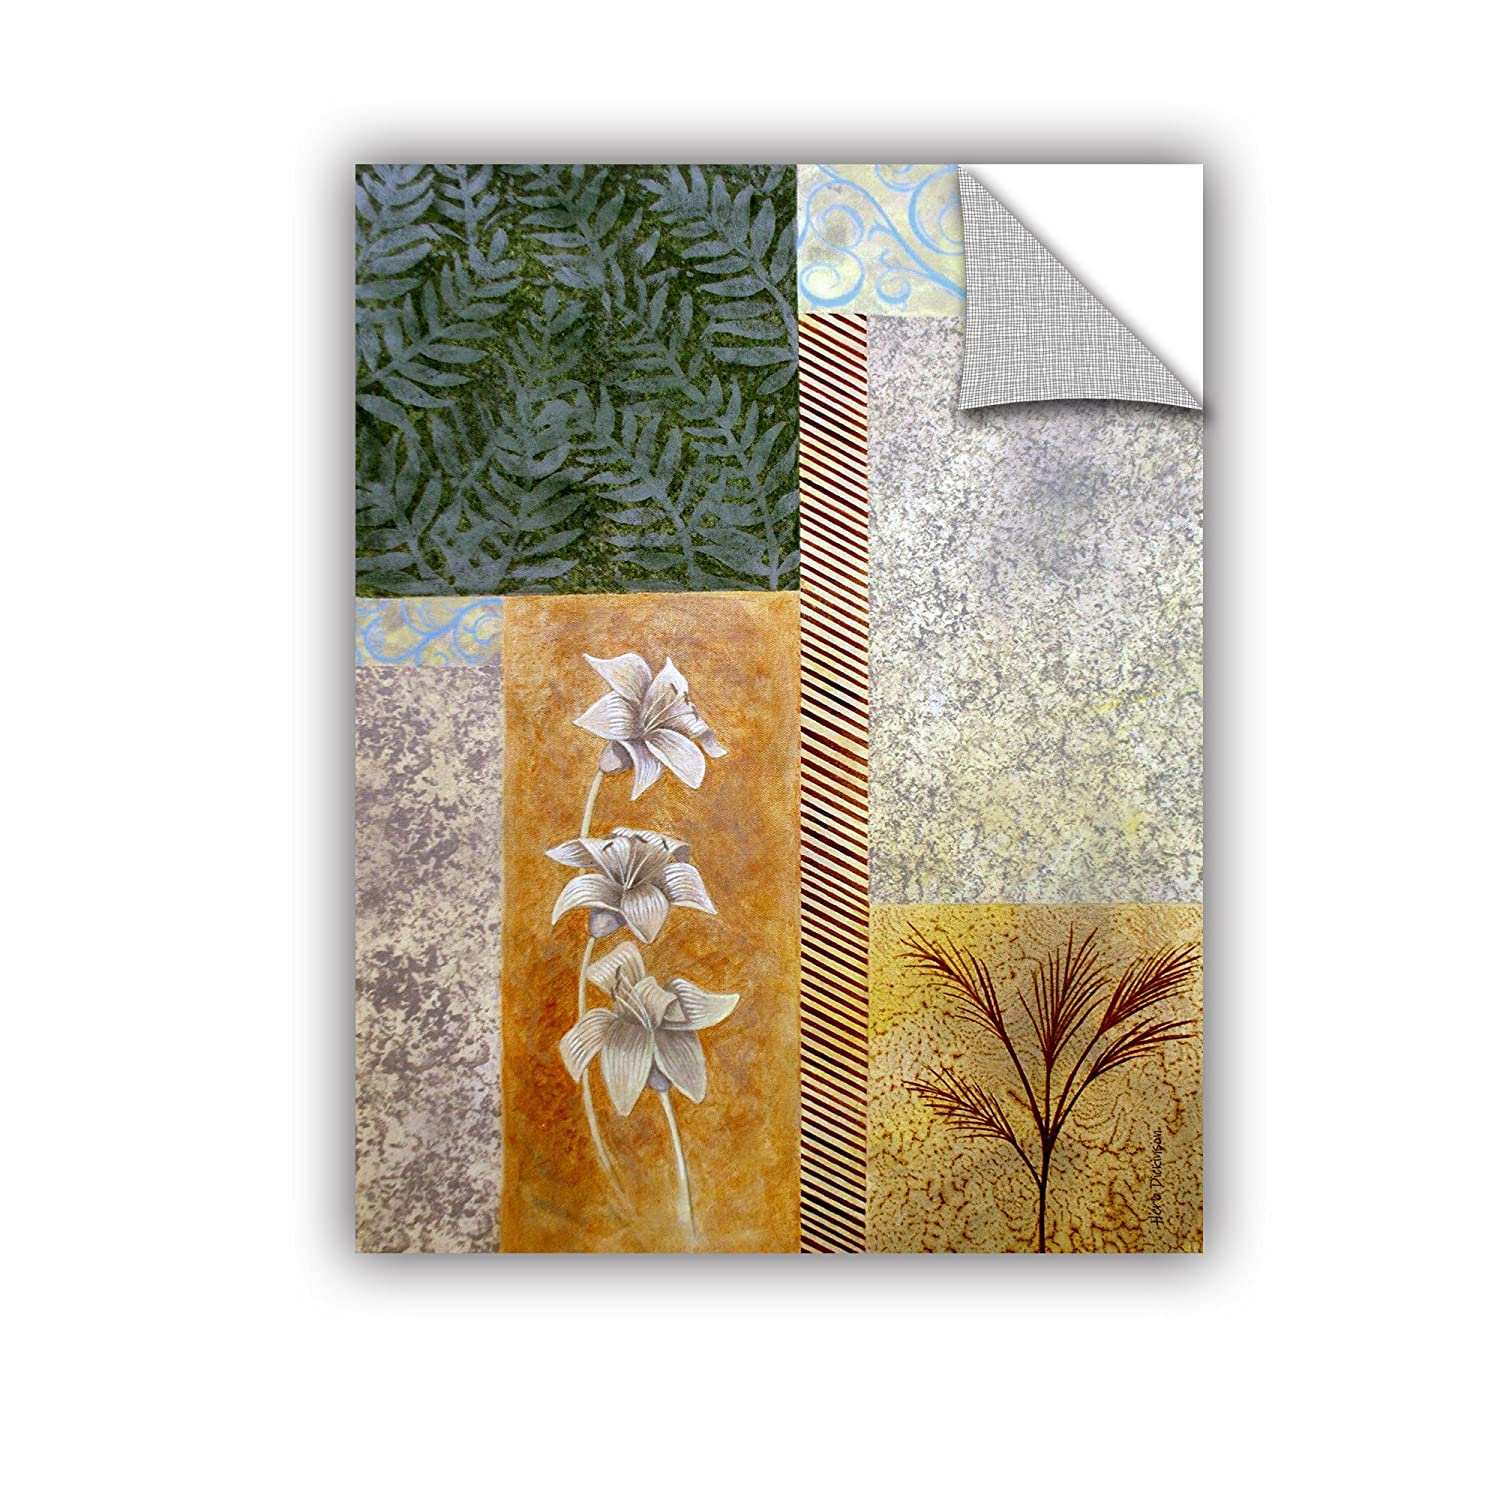 ArtWall Herb Dickinsons A Collage of Patterns with Plants and Rustic Colors Art Appeelz Removable Graphic Wall Art 18 x 24